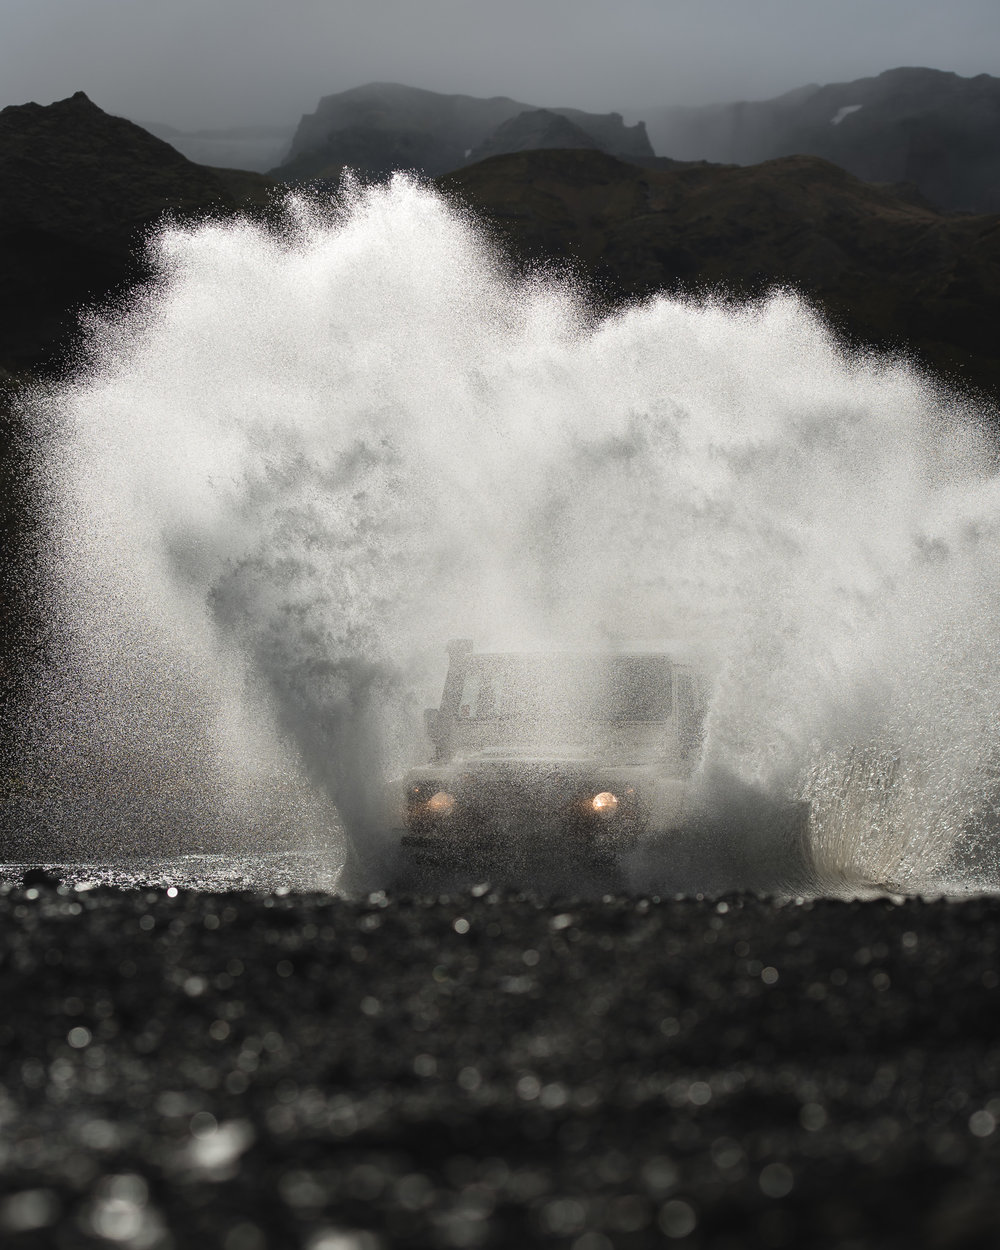 landrover in a puddle